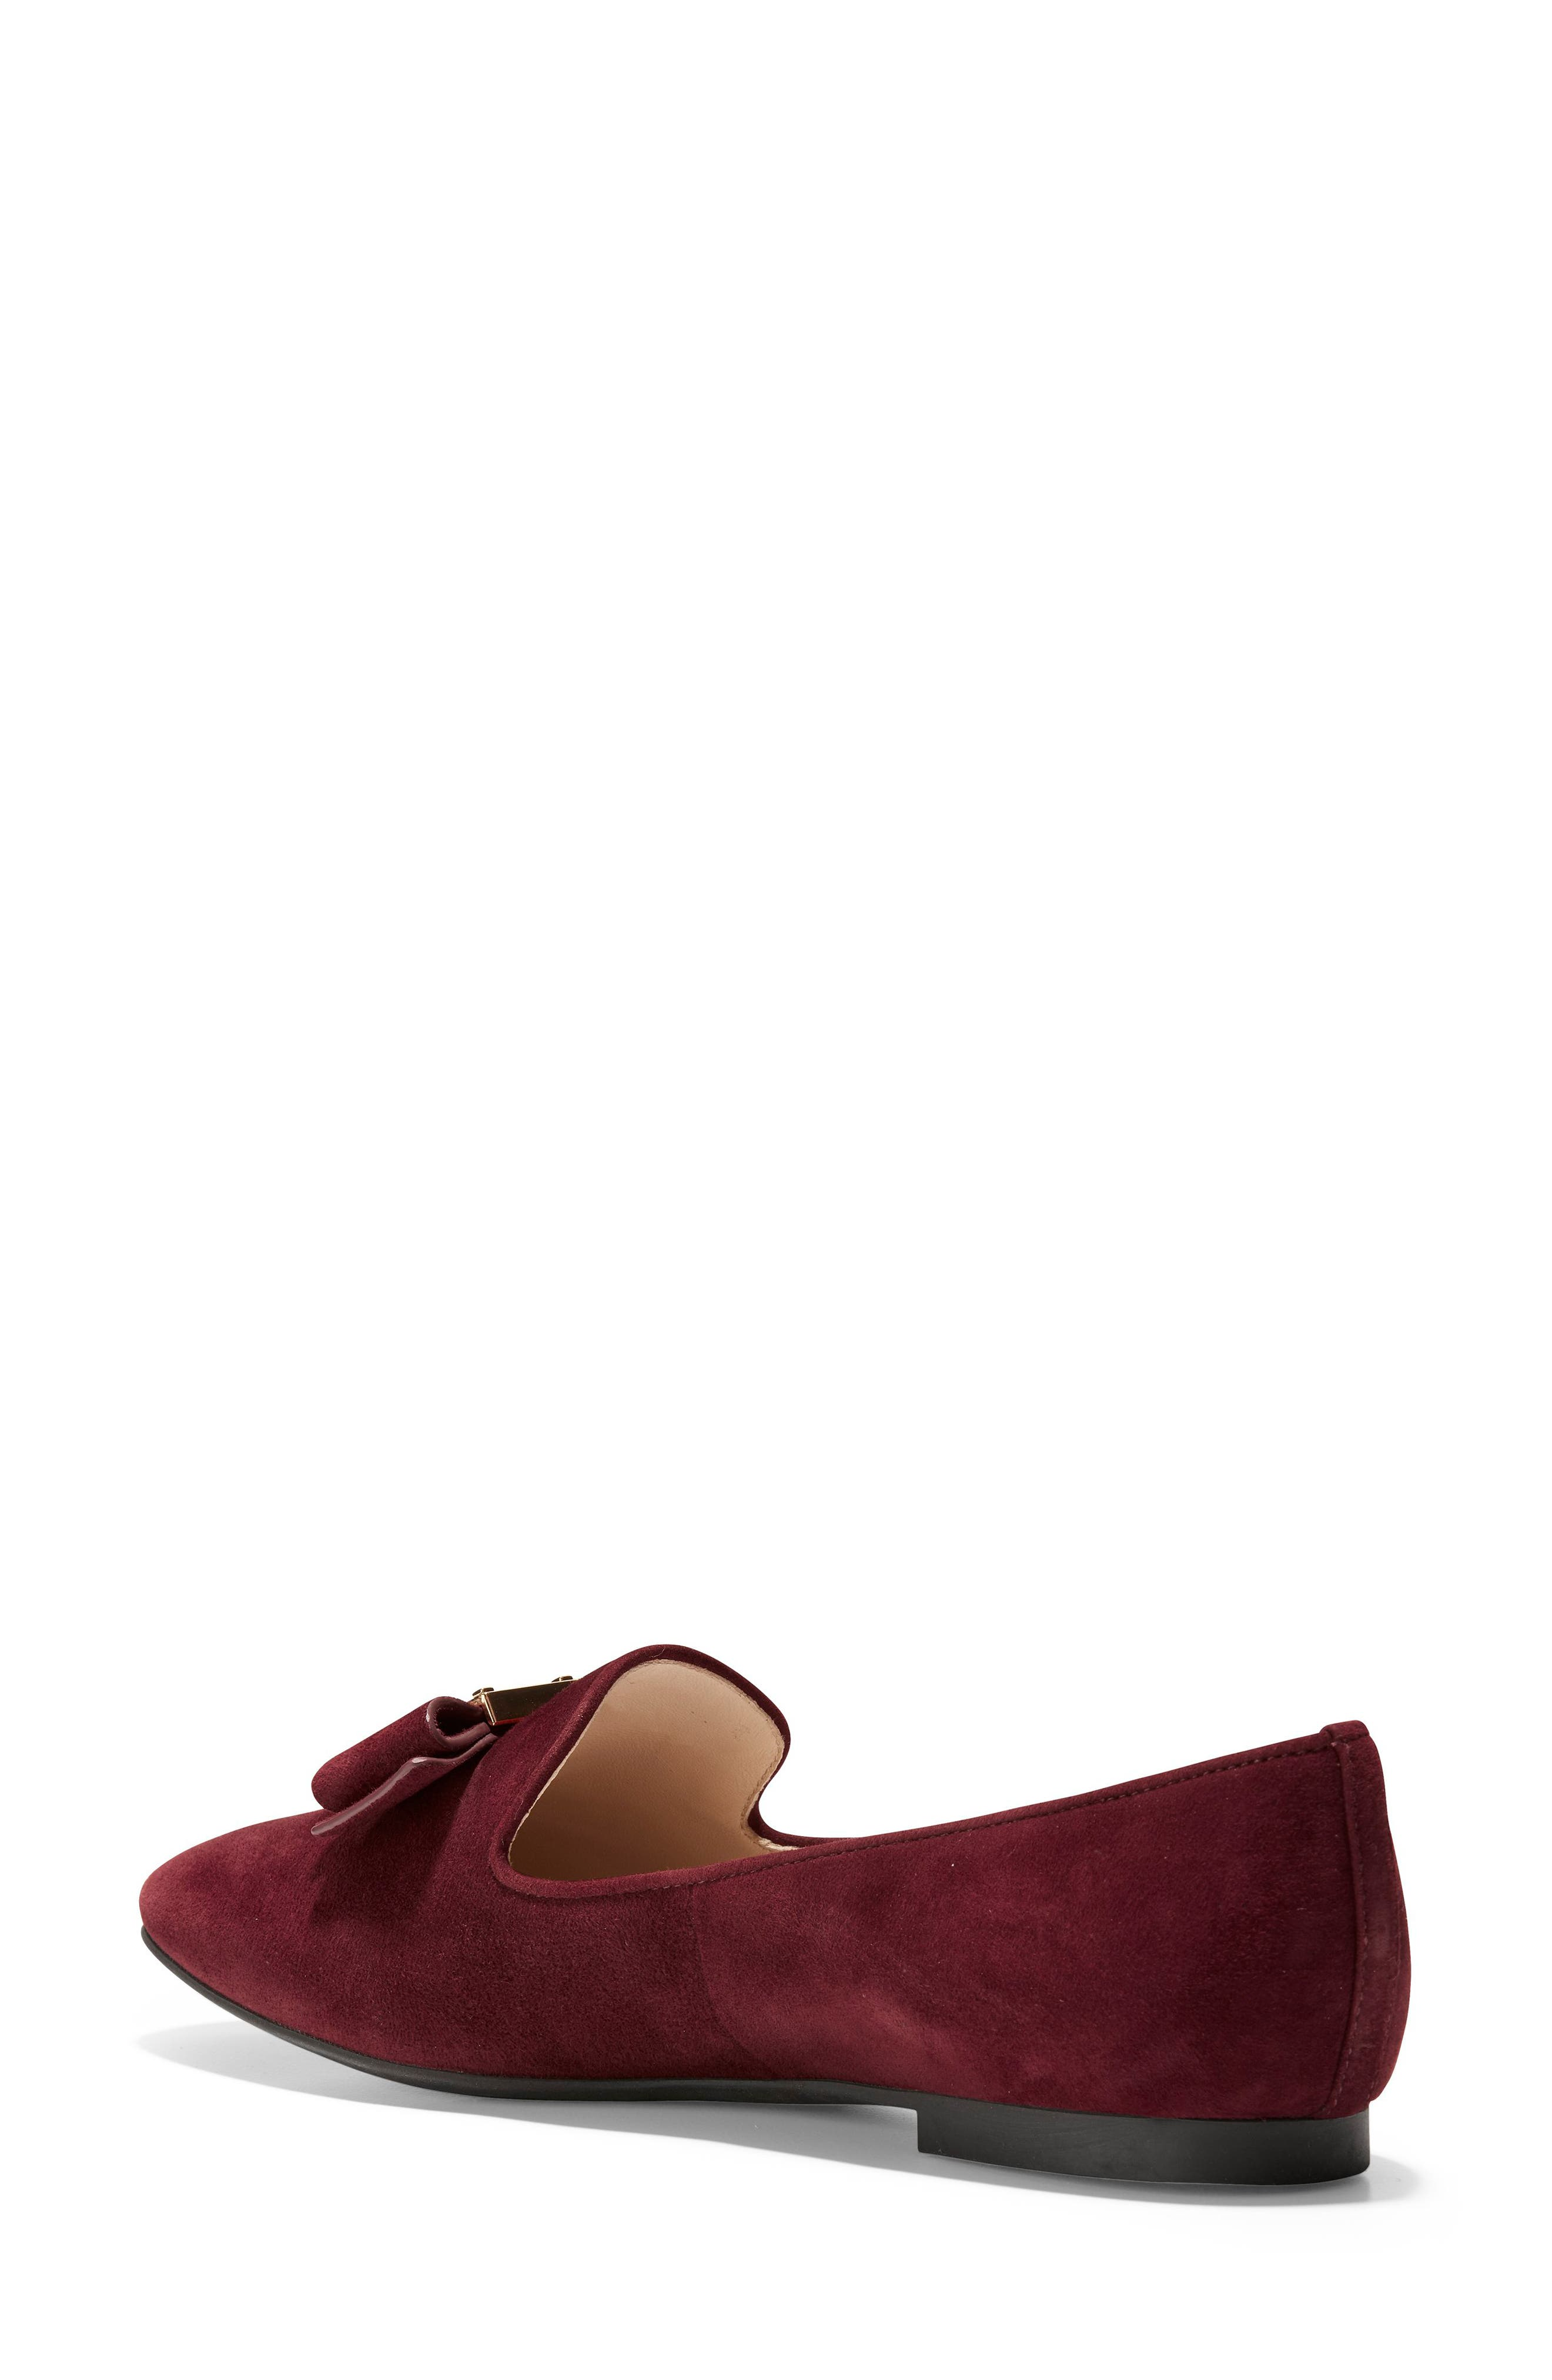 Tali Bow Loafer,                             Alternate thumbnail 2, color,                             605